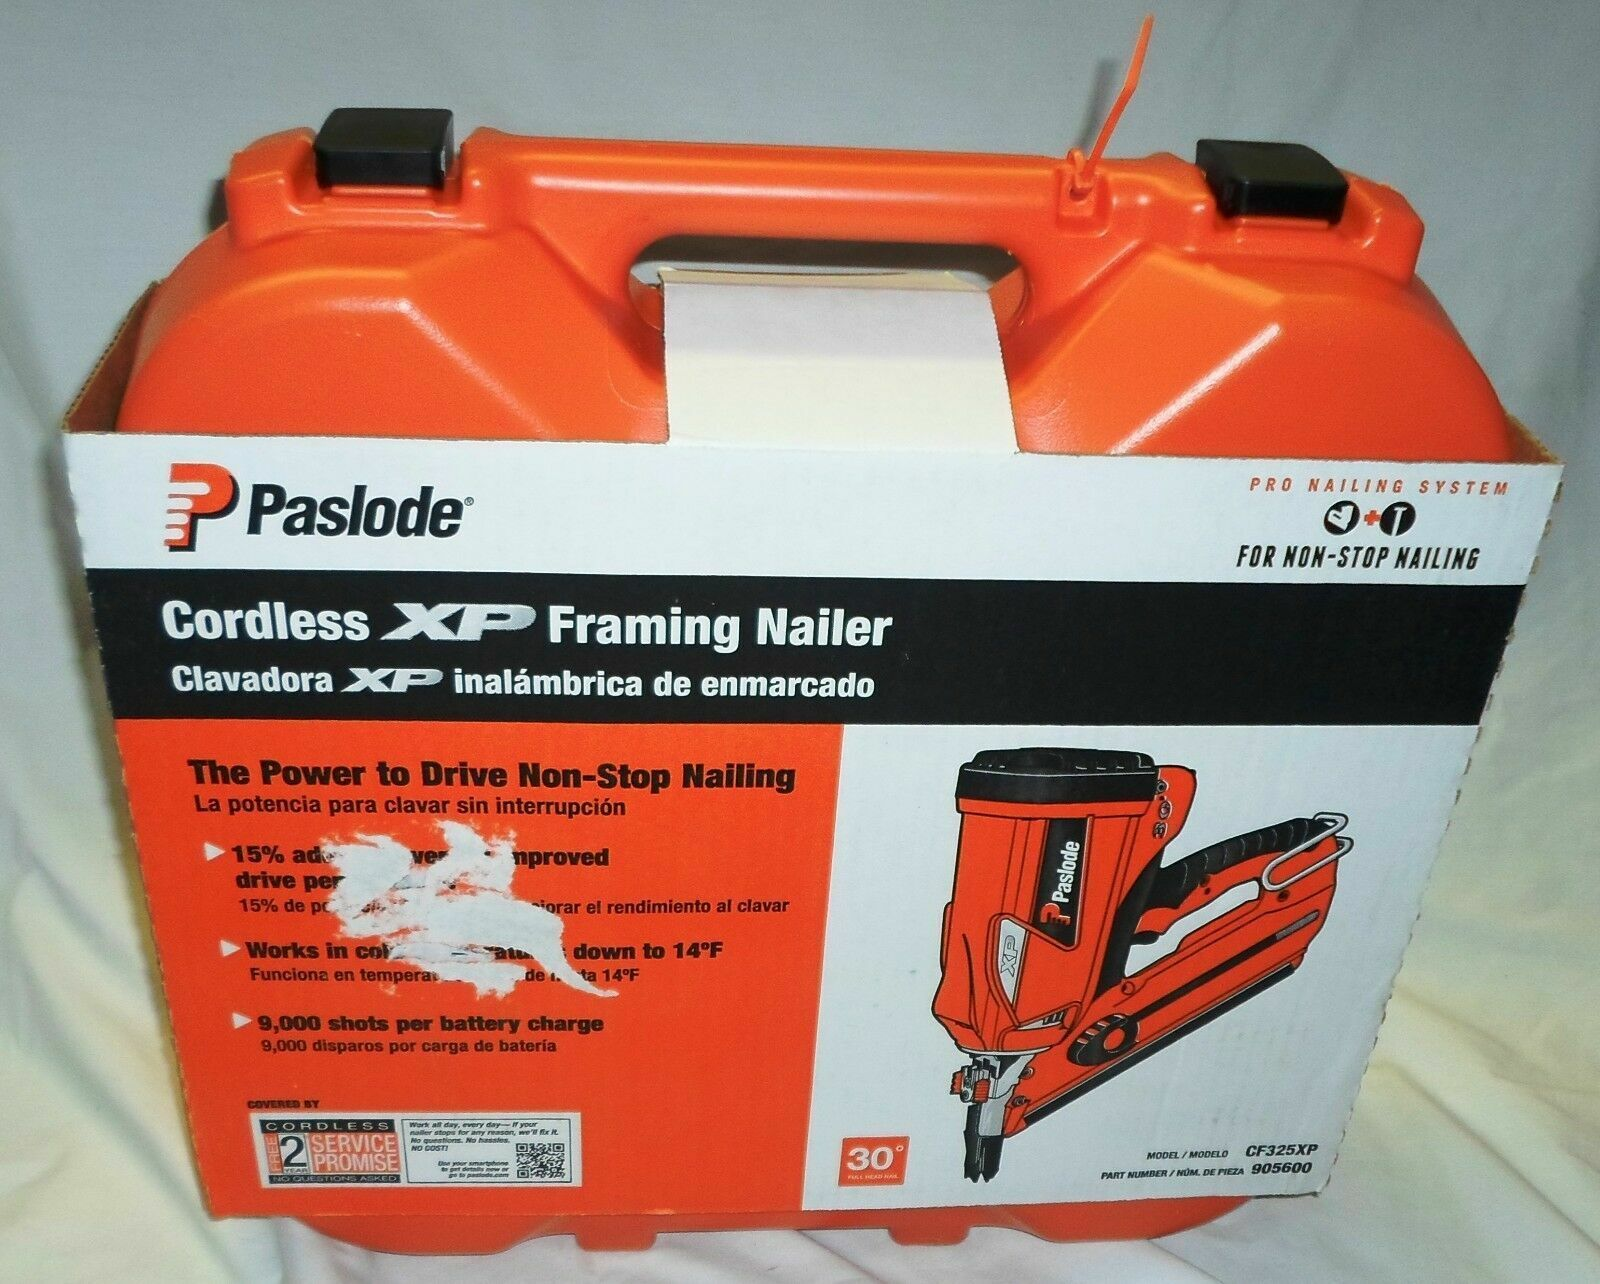 Paslode Cordless Framing Nailer CF325XP 905600 - NEW